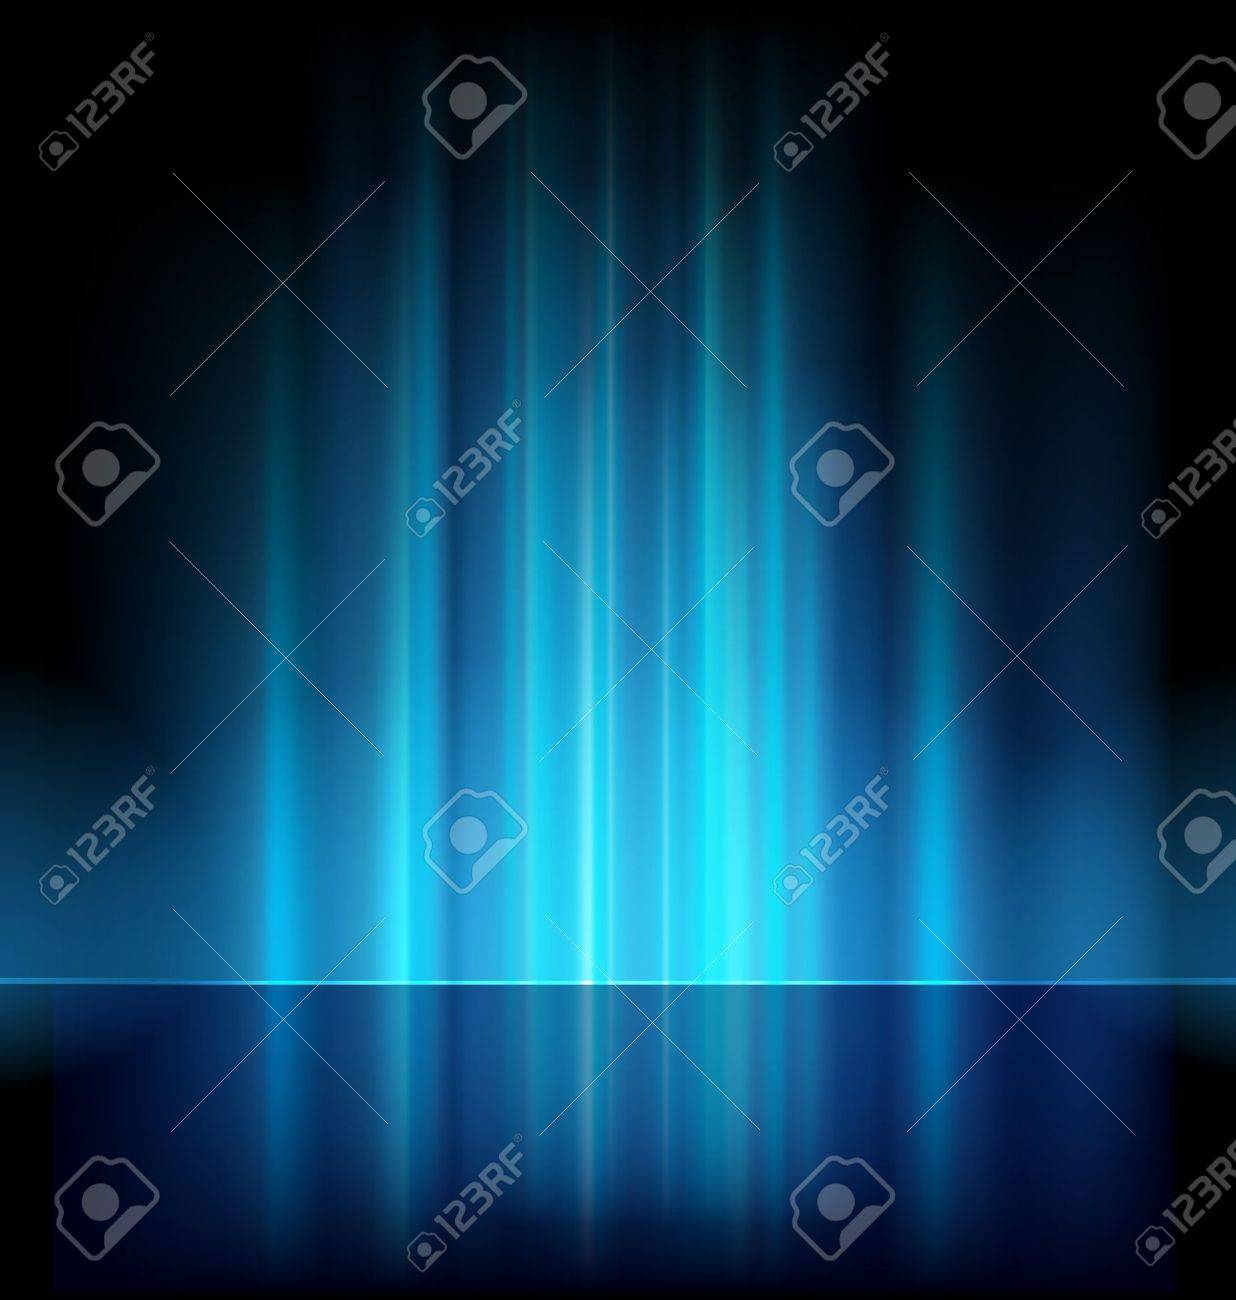 abstract lights background Stock Photo - 7860044